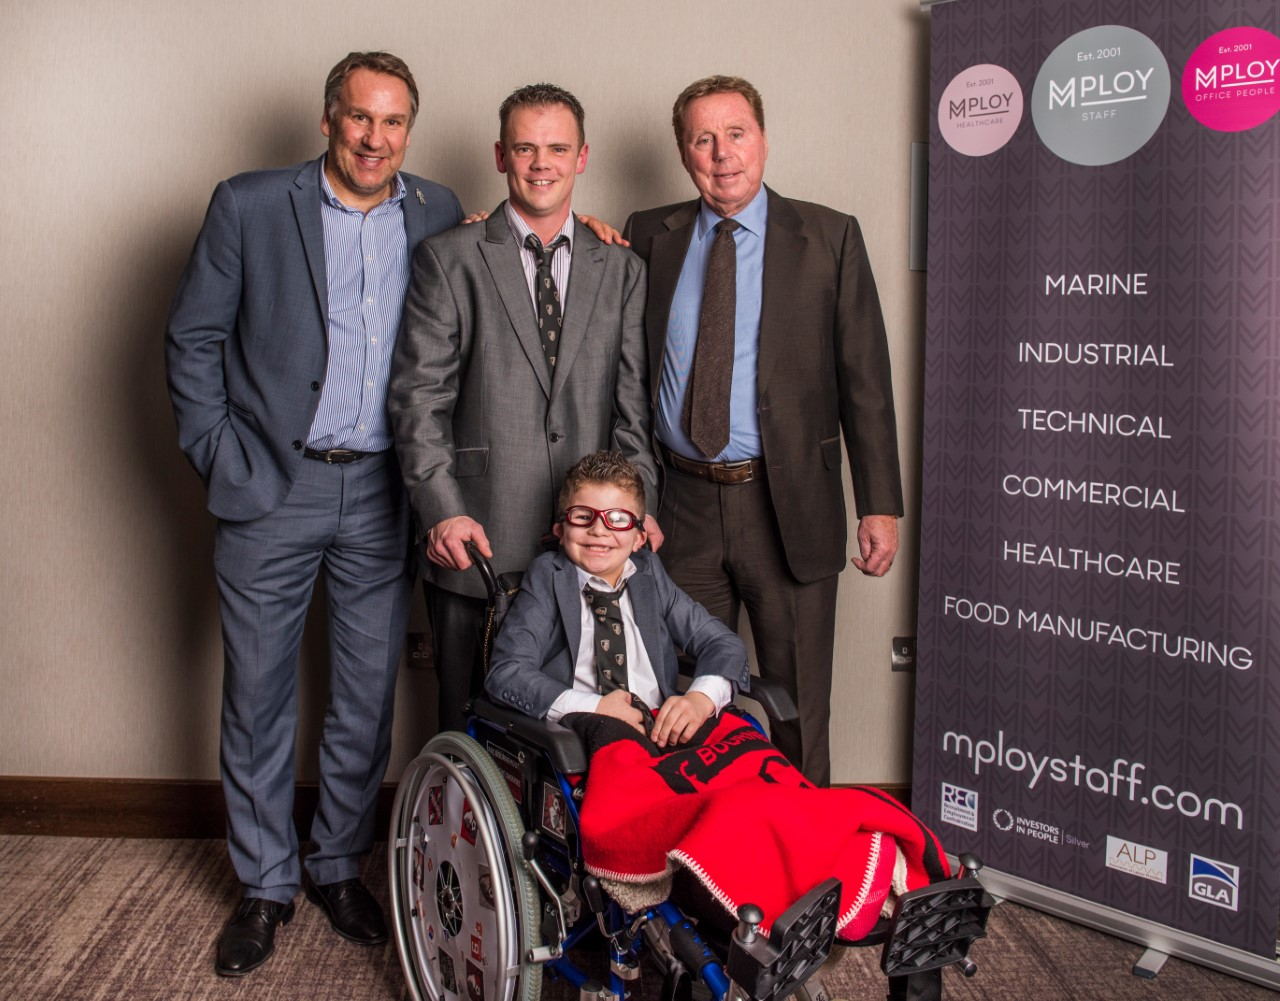 Mploy helped to raise money for young people with serious illnesses